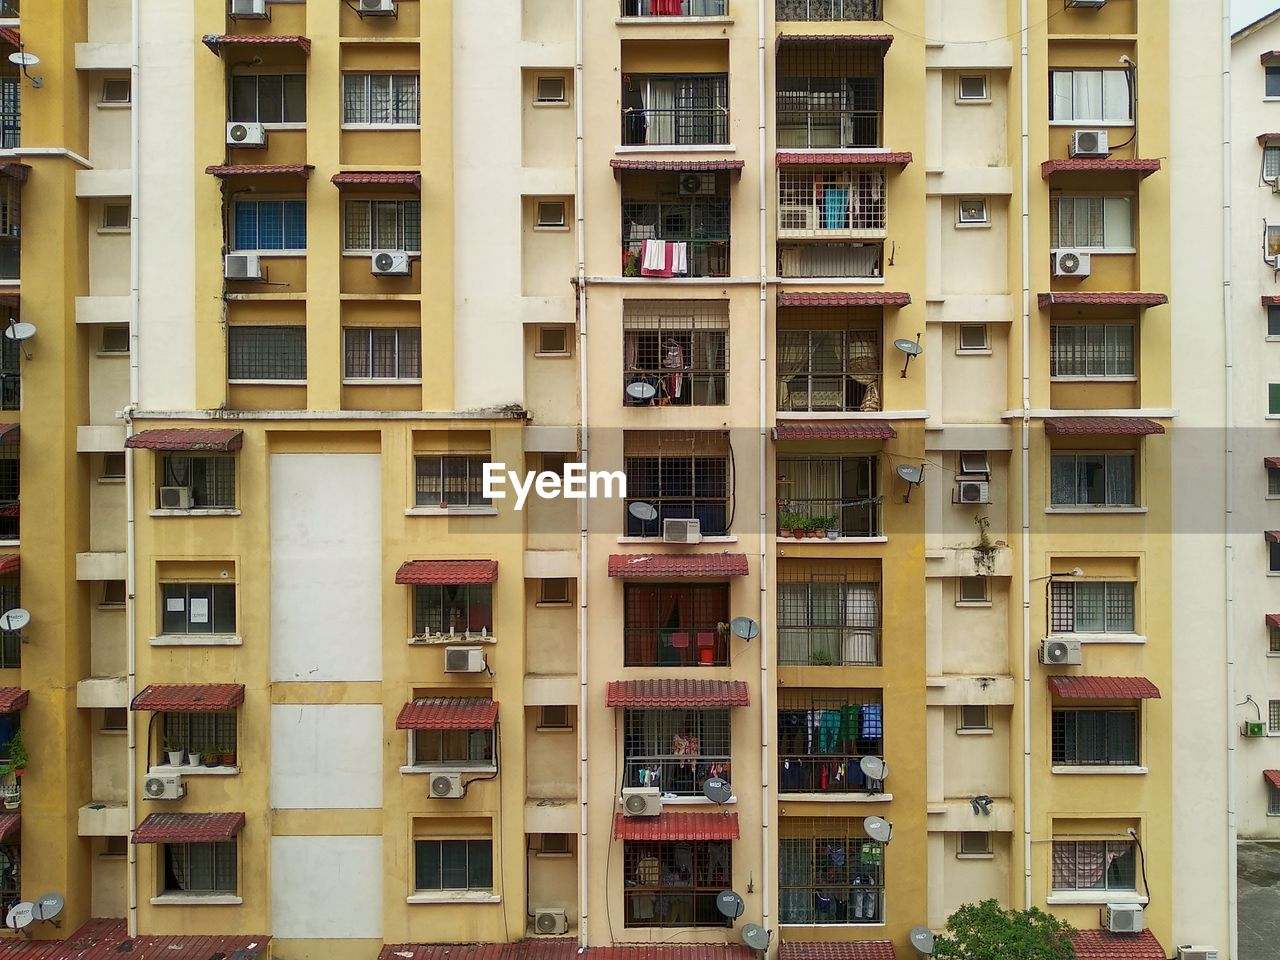 window, architecture, built structure, yellow, building exterior, no people, building, residential district, full frame, apartment, backgrounds, day, outdoors, balcony, city, repetition, in a row, pattern, nature, low angle view